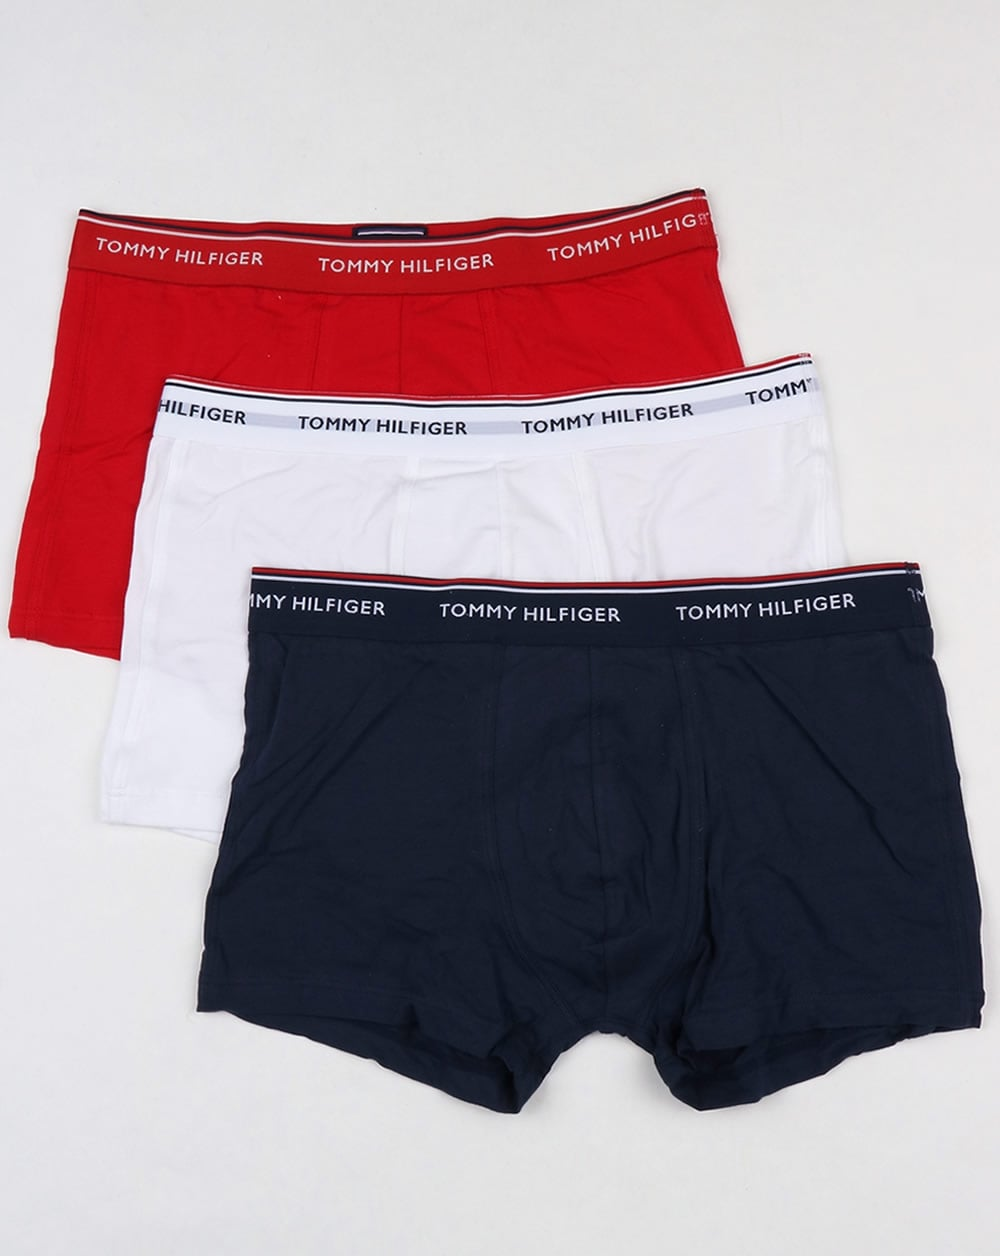 ead1b2b57d32 Tommy Hilfiger 3 Pack Boxer Shorts White/Red/Navy | 80s casual classics